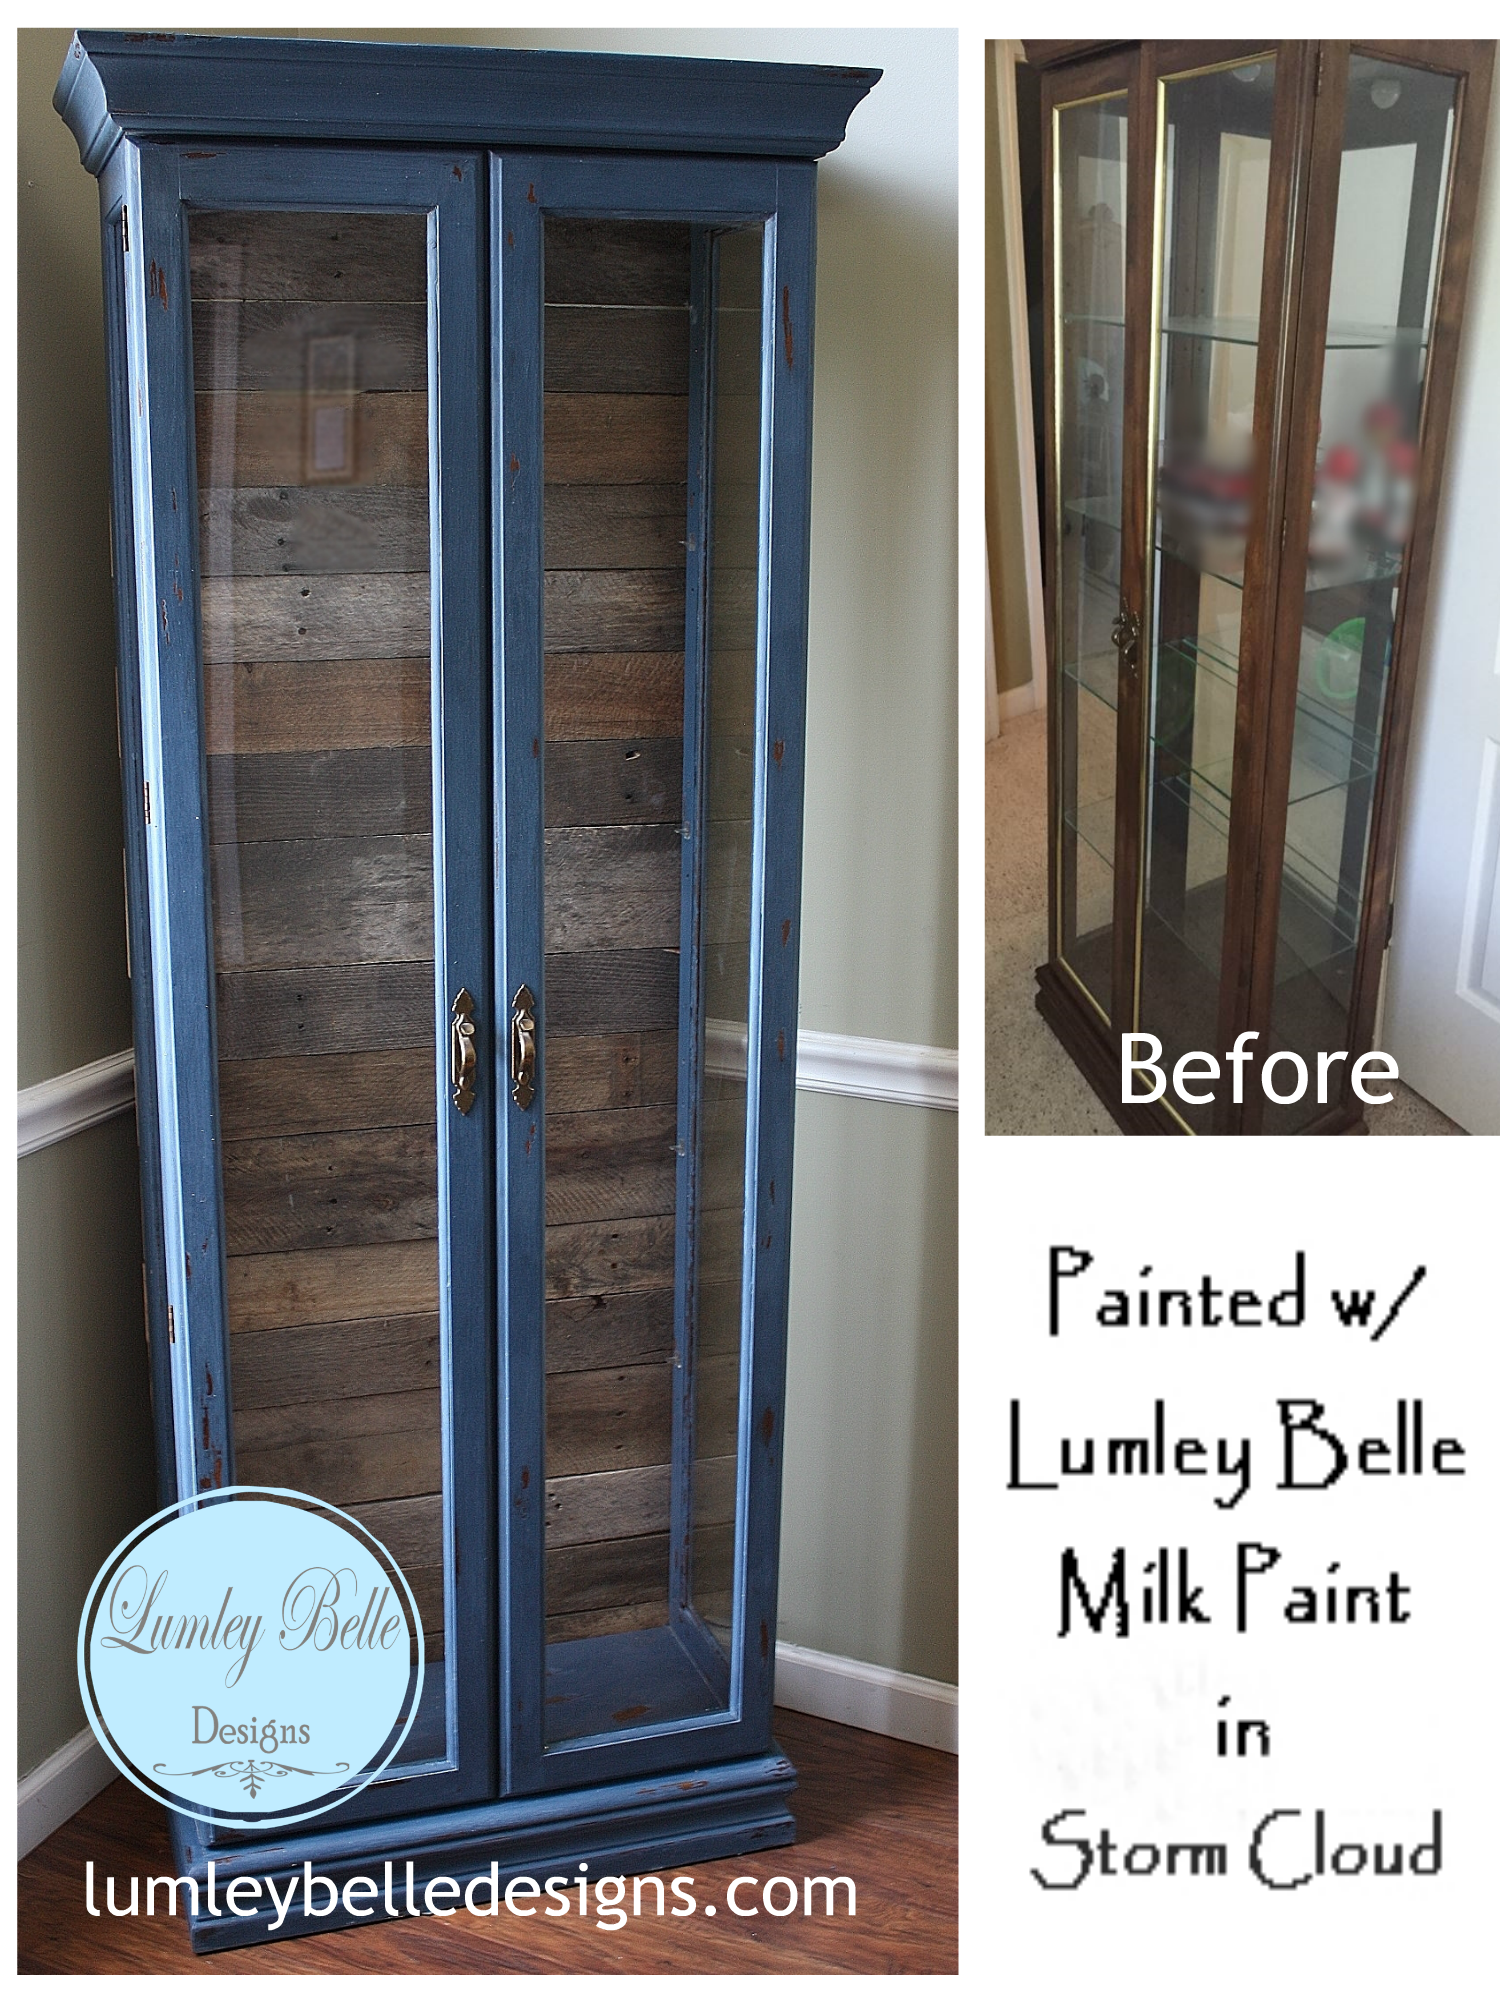 Painted Curio Cabinet The Barn Wood Pallet Wood Reclaimed Wood Over The Back Mirror Is What Painted Curio Cabinets Curio Cabinet Makeover Curio Cabinet Redo